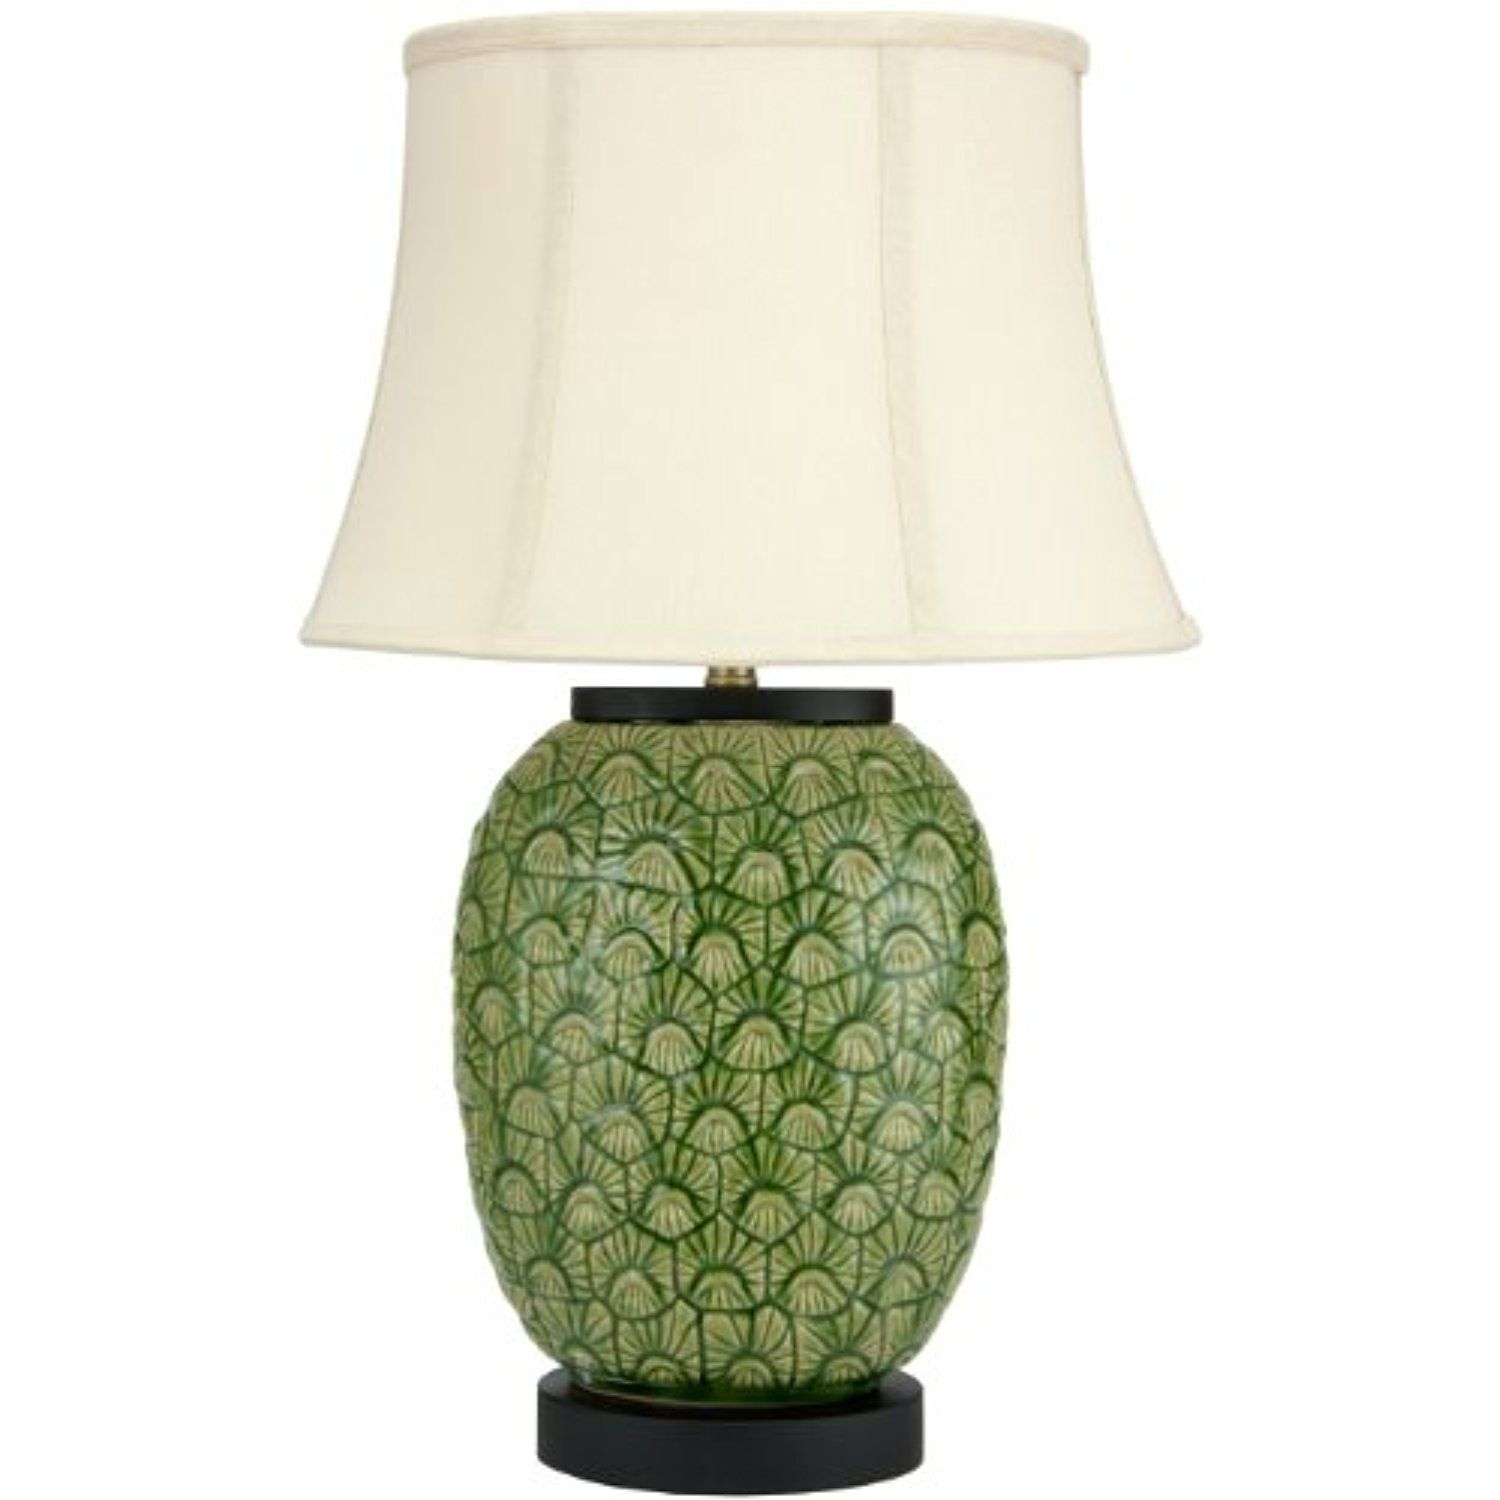 Oriental furniture 25 green feather design porcelain jar lamp porcelain mozeypictures Image collections